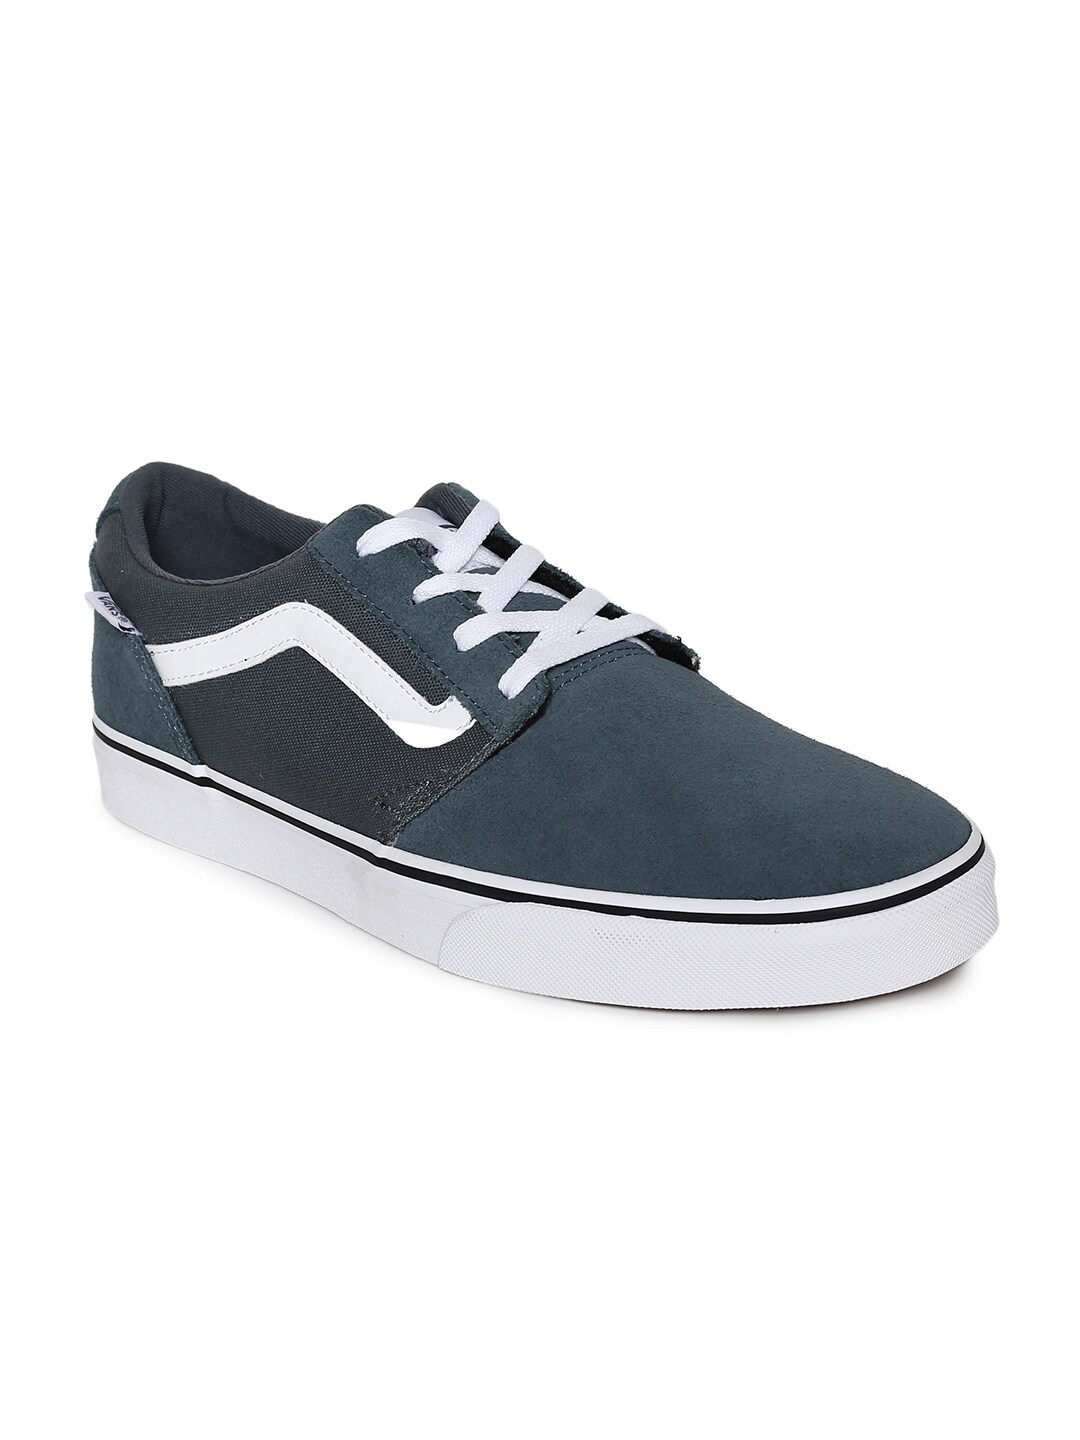 Buy Vans Men Navy Blue Ward Sneakers - Casual Shoes for Men 7301215 ... db12e47eb